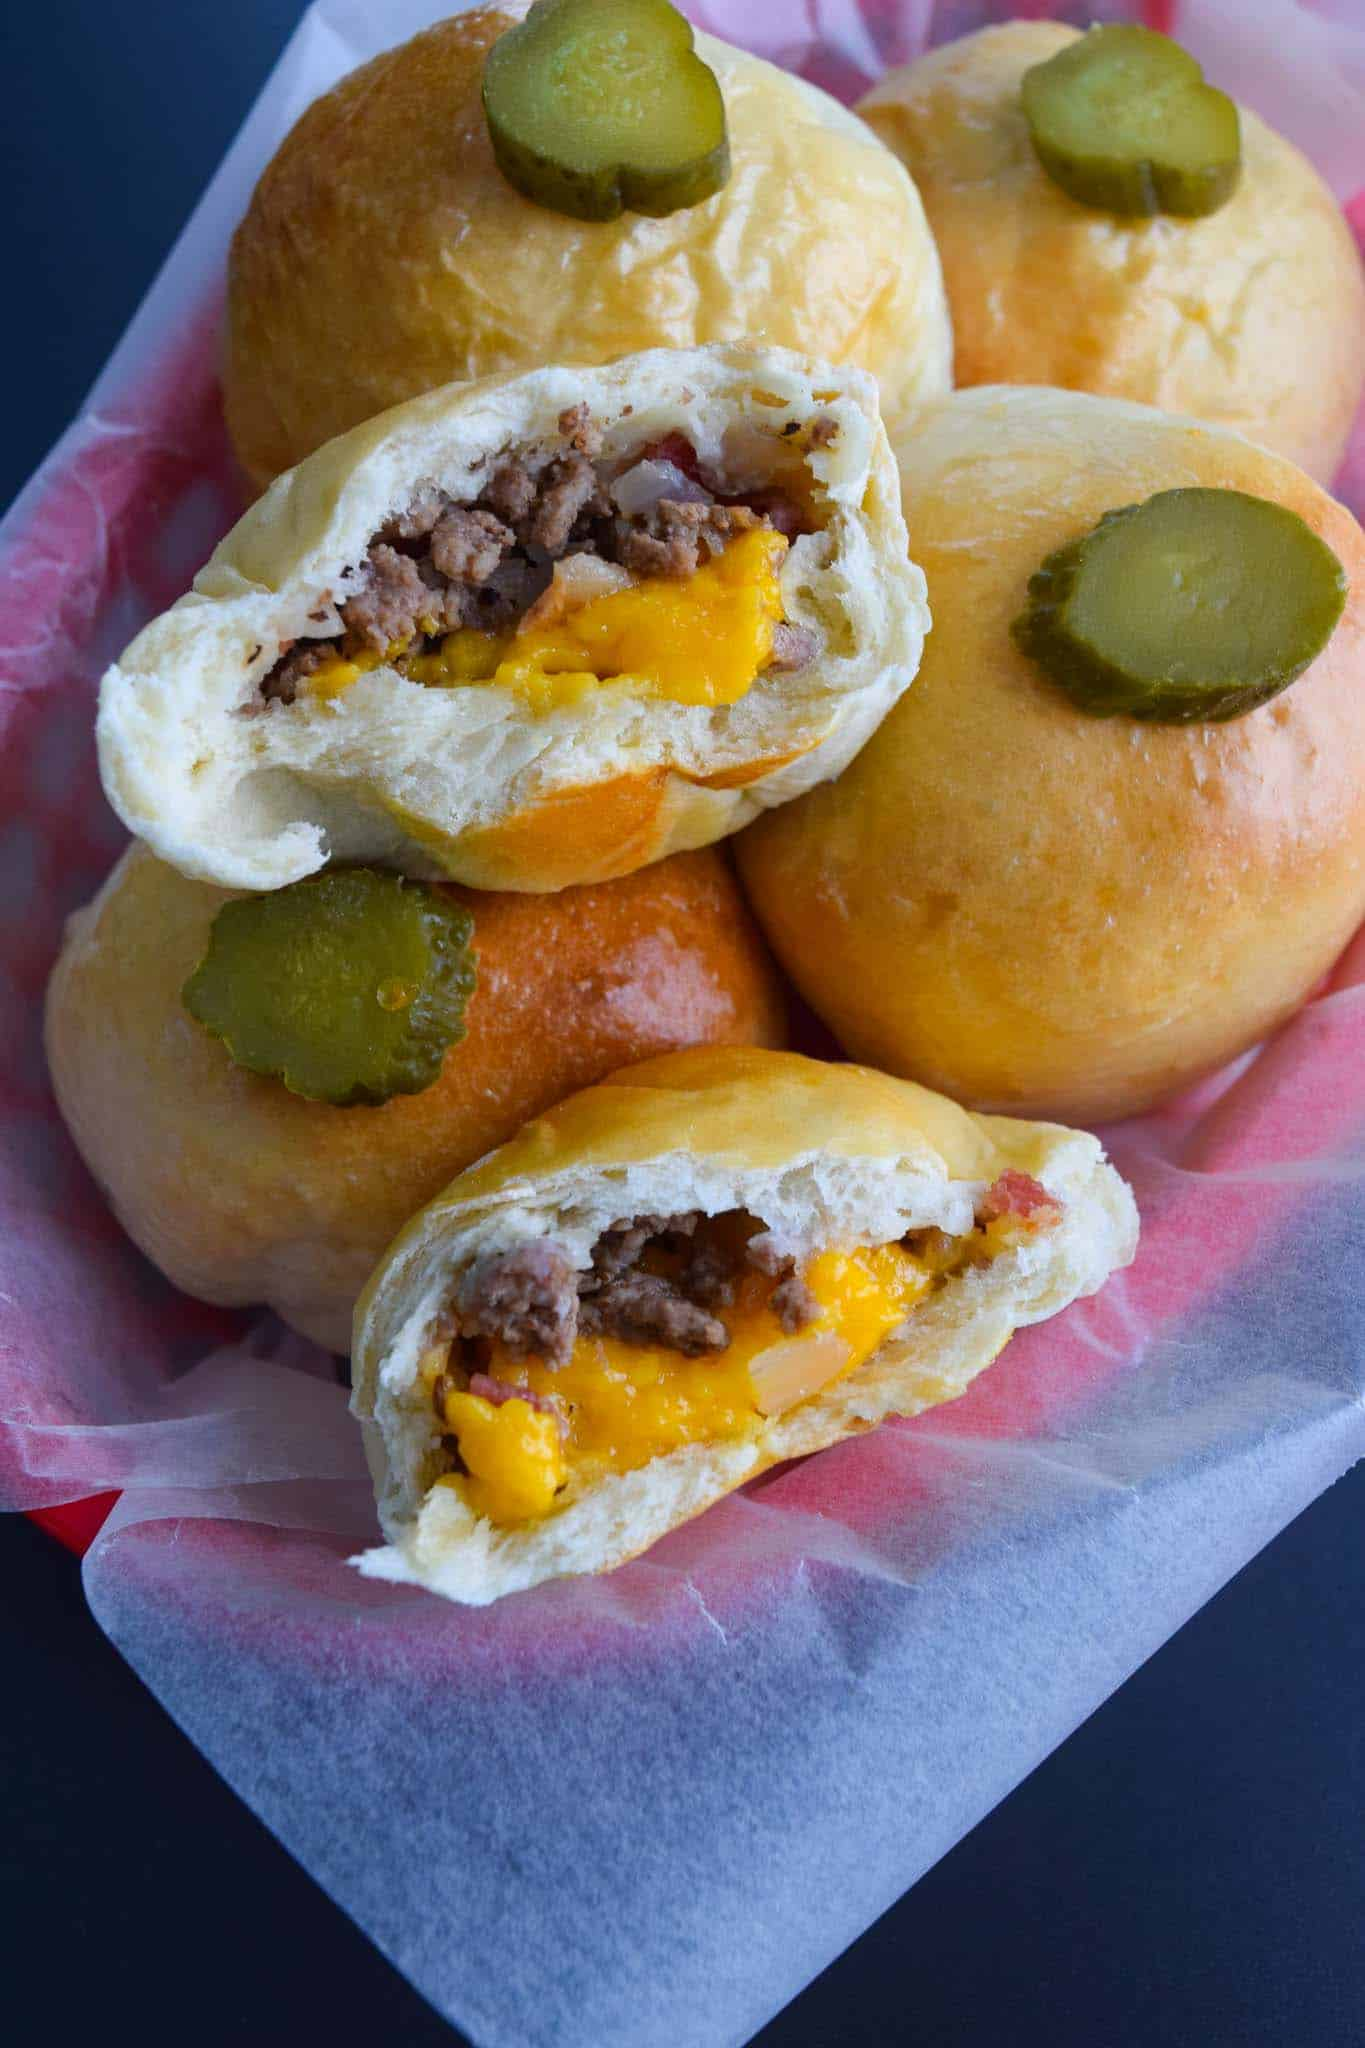 Bacon Cheeseburger Bombs cut in half to show cheesy inside close up view